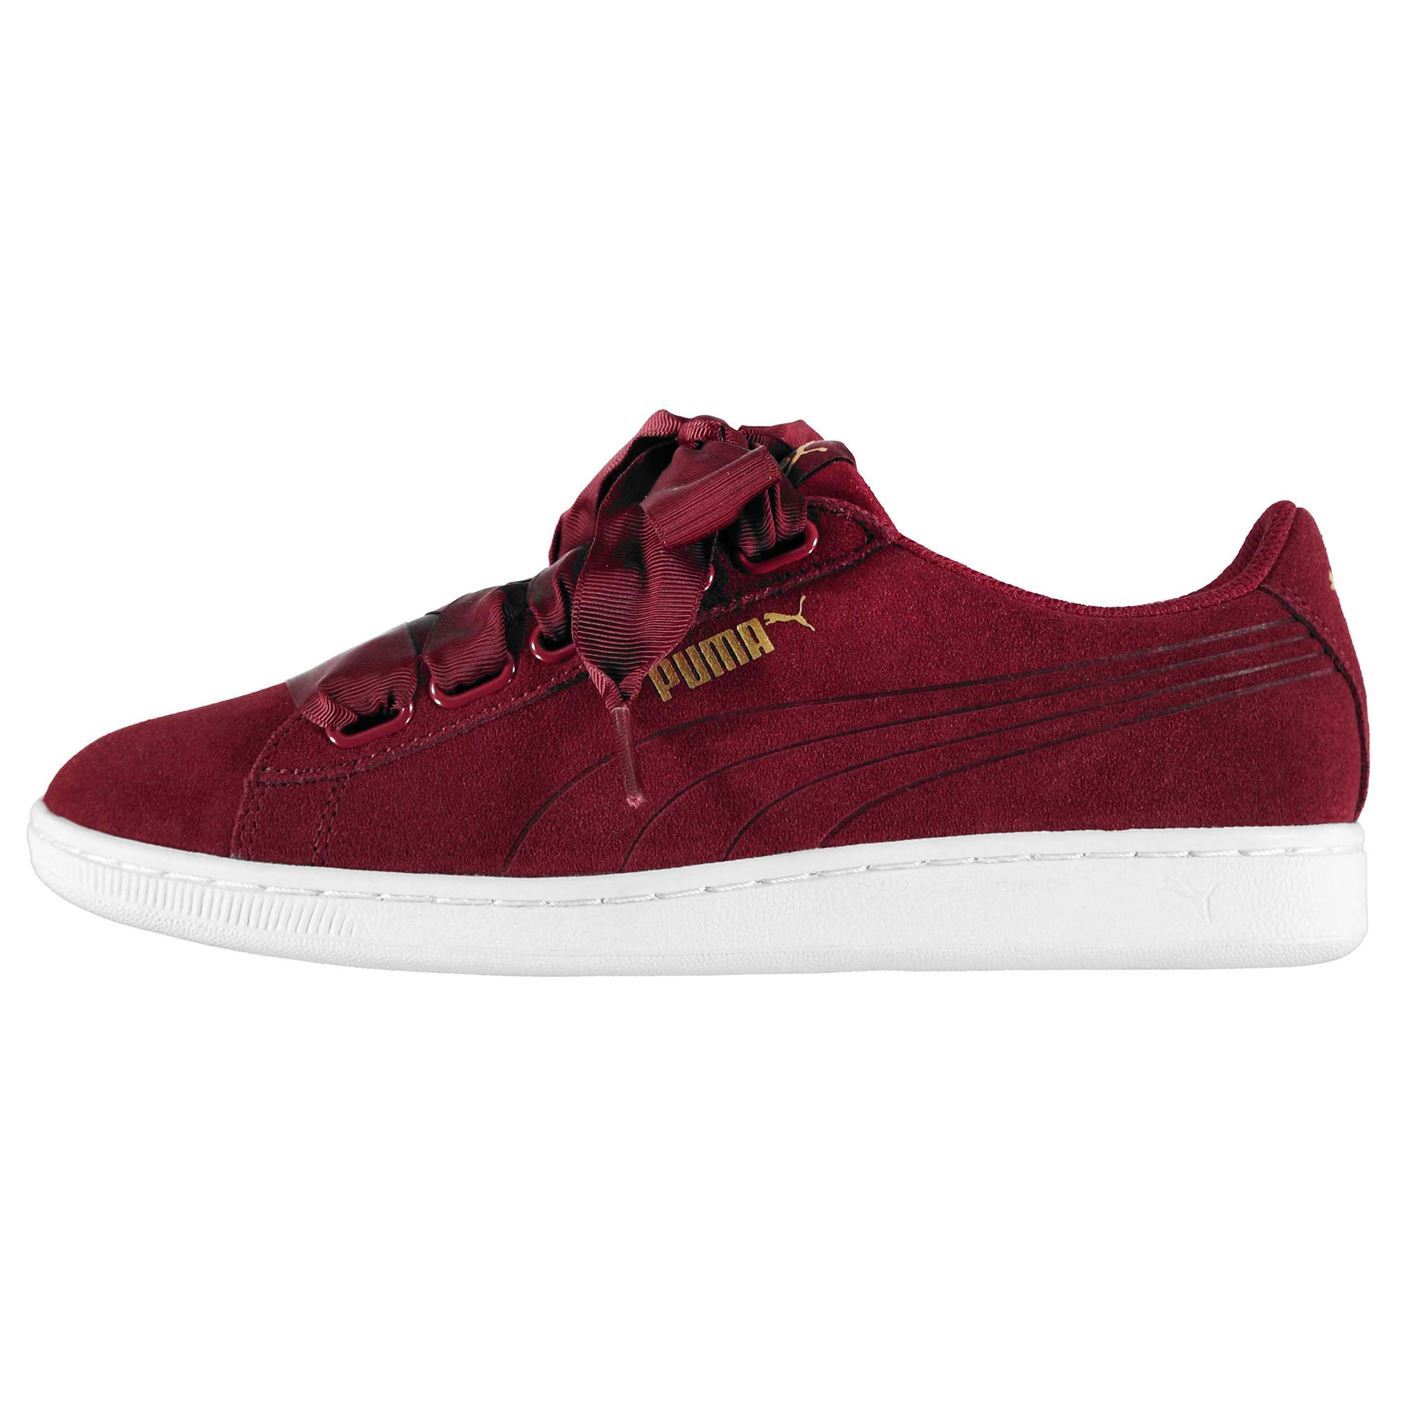 9a7e8e1aebd8 Puma Womens Vikky Ribbon Trainers Sneakers Shoes Lace Up Padded ...